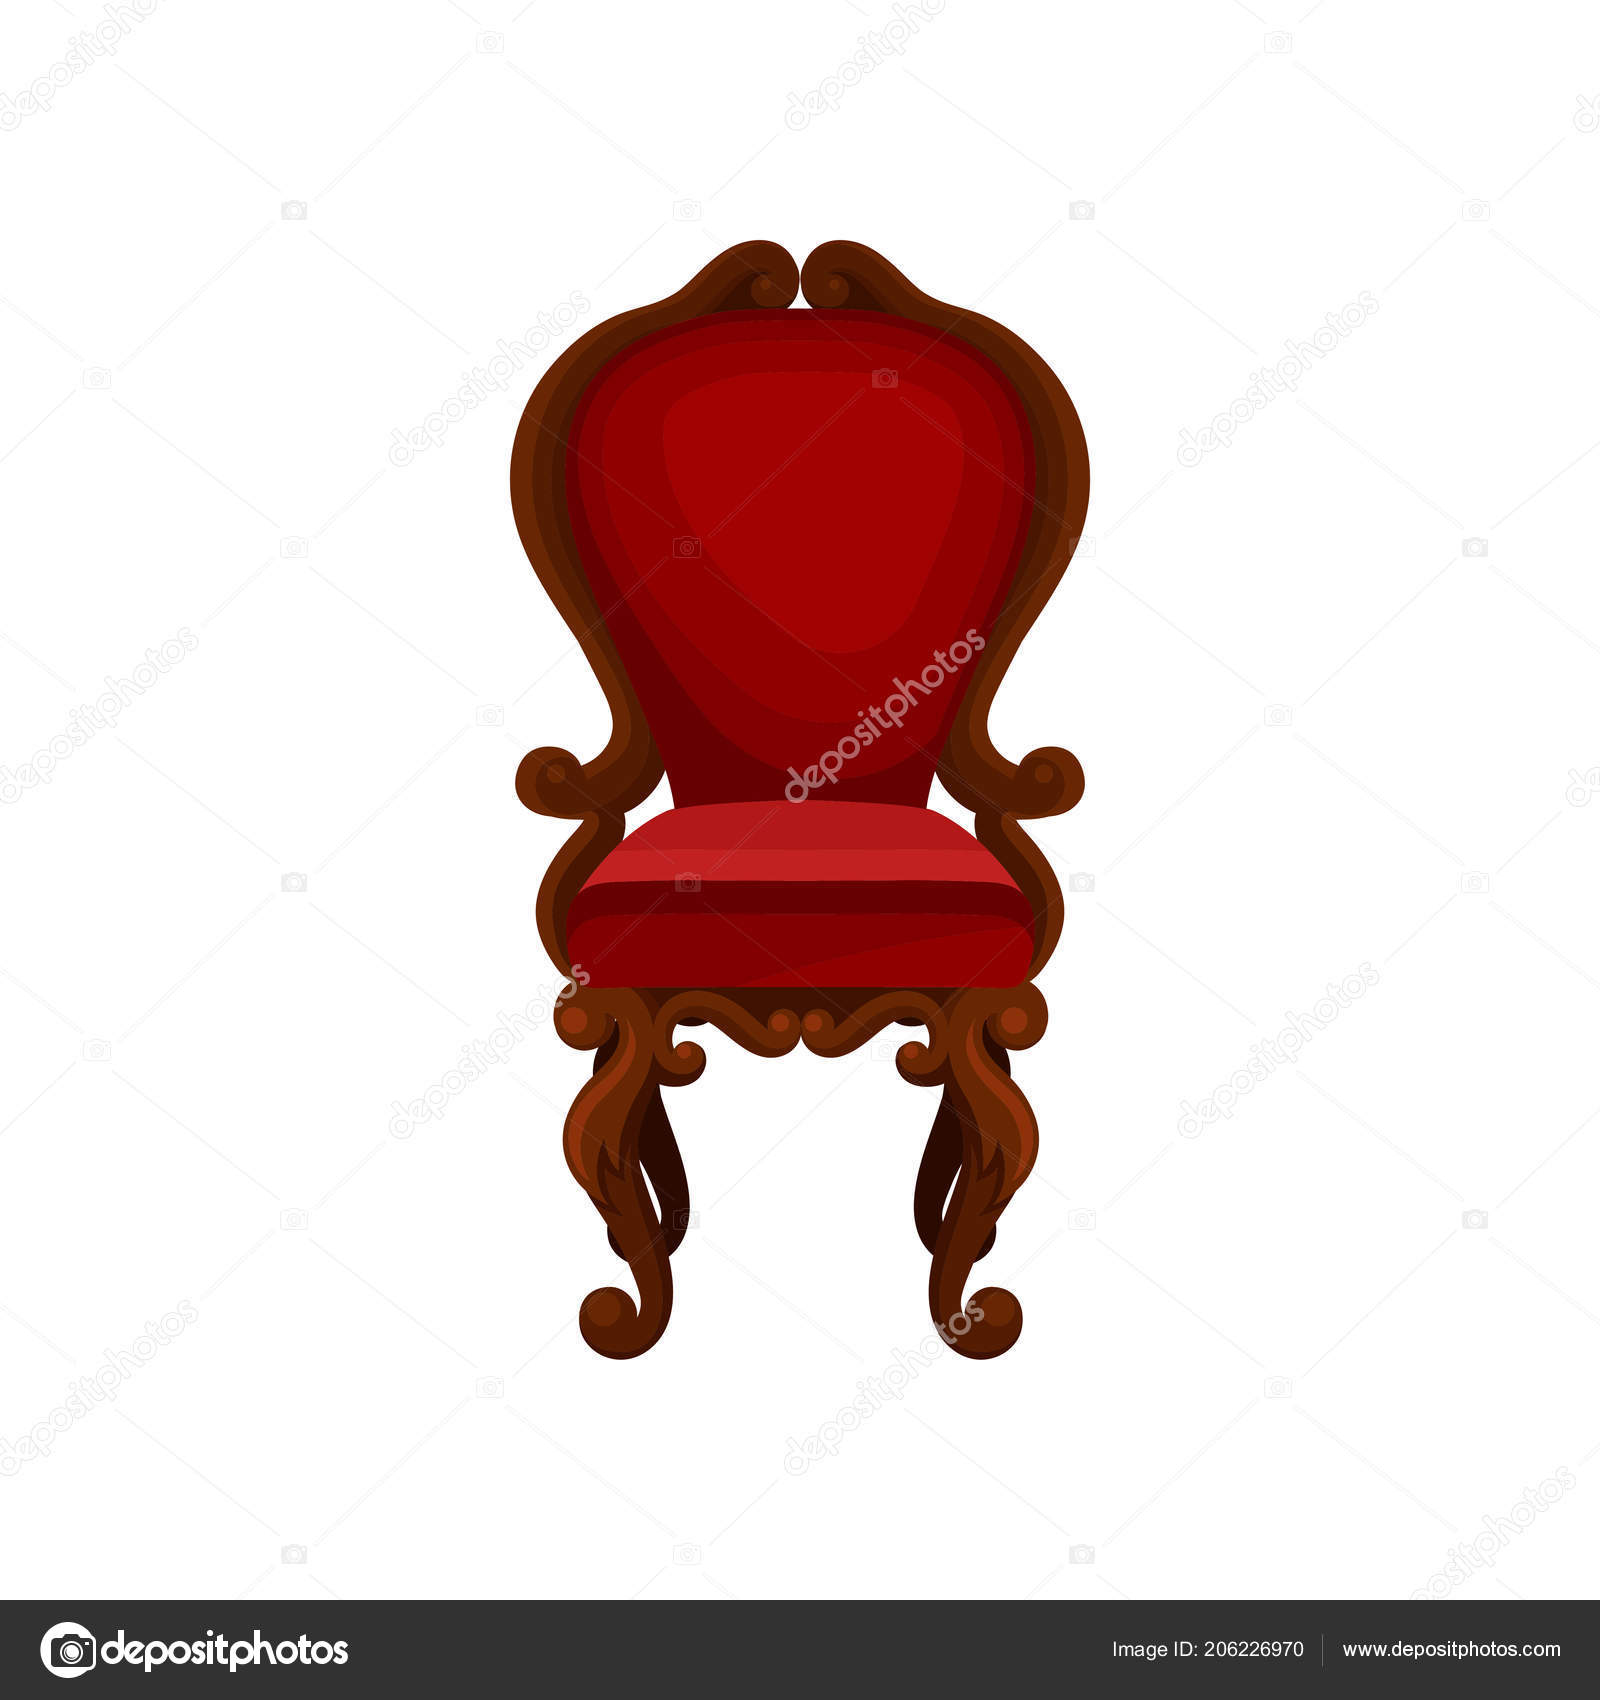 Astonishing Luxury Armchair For Home Interior Wooden Chair With Red Uwap Interior Chair Design Uwaporg